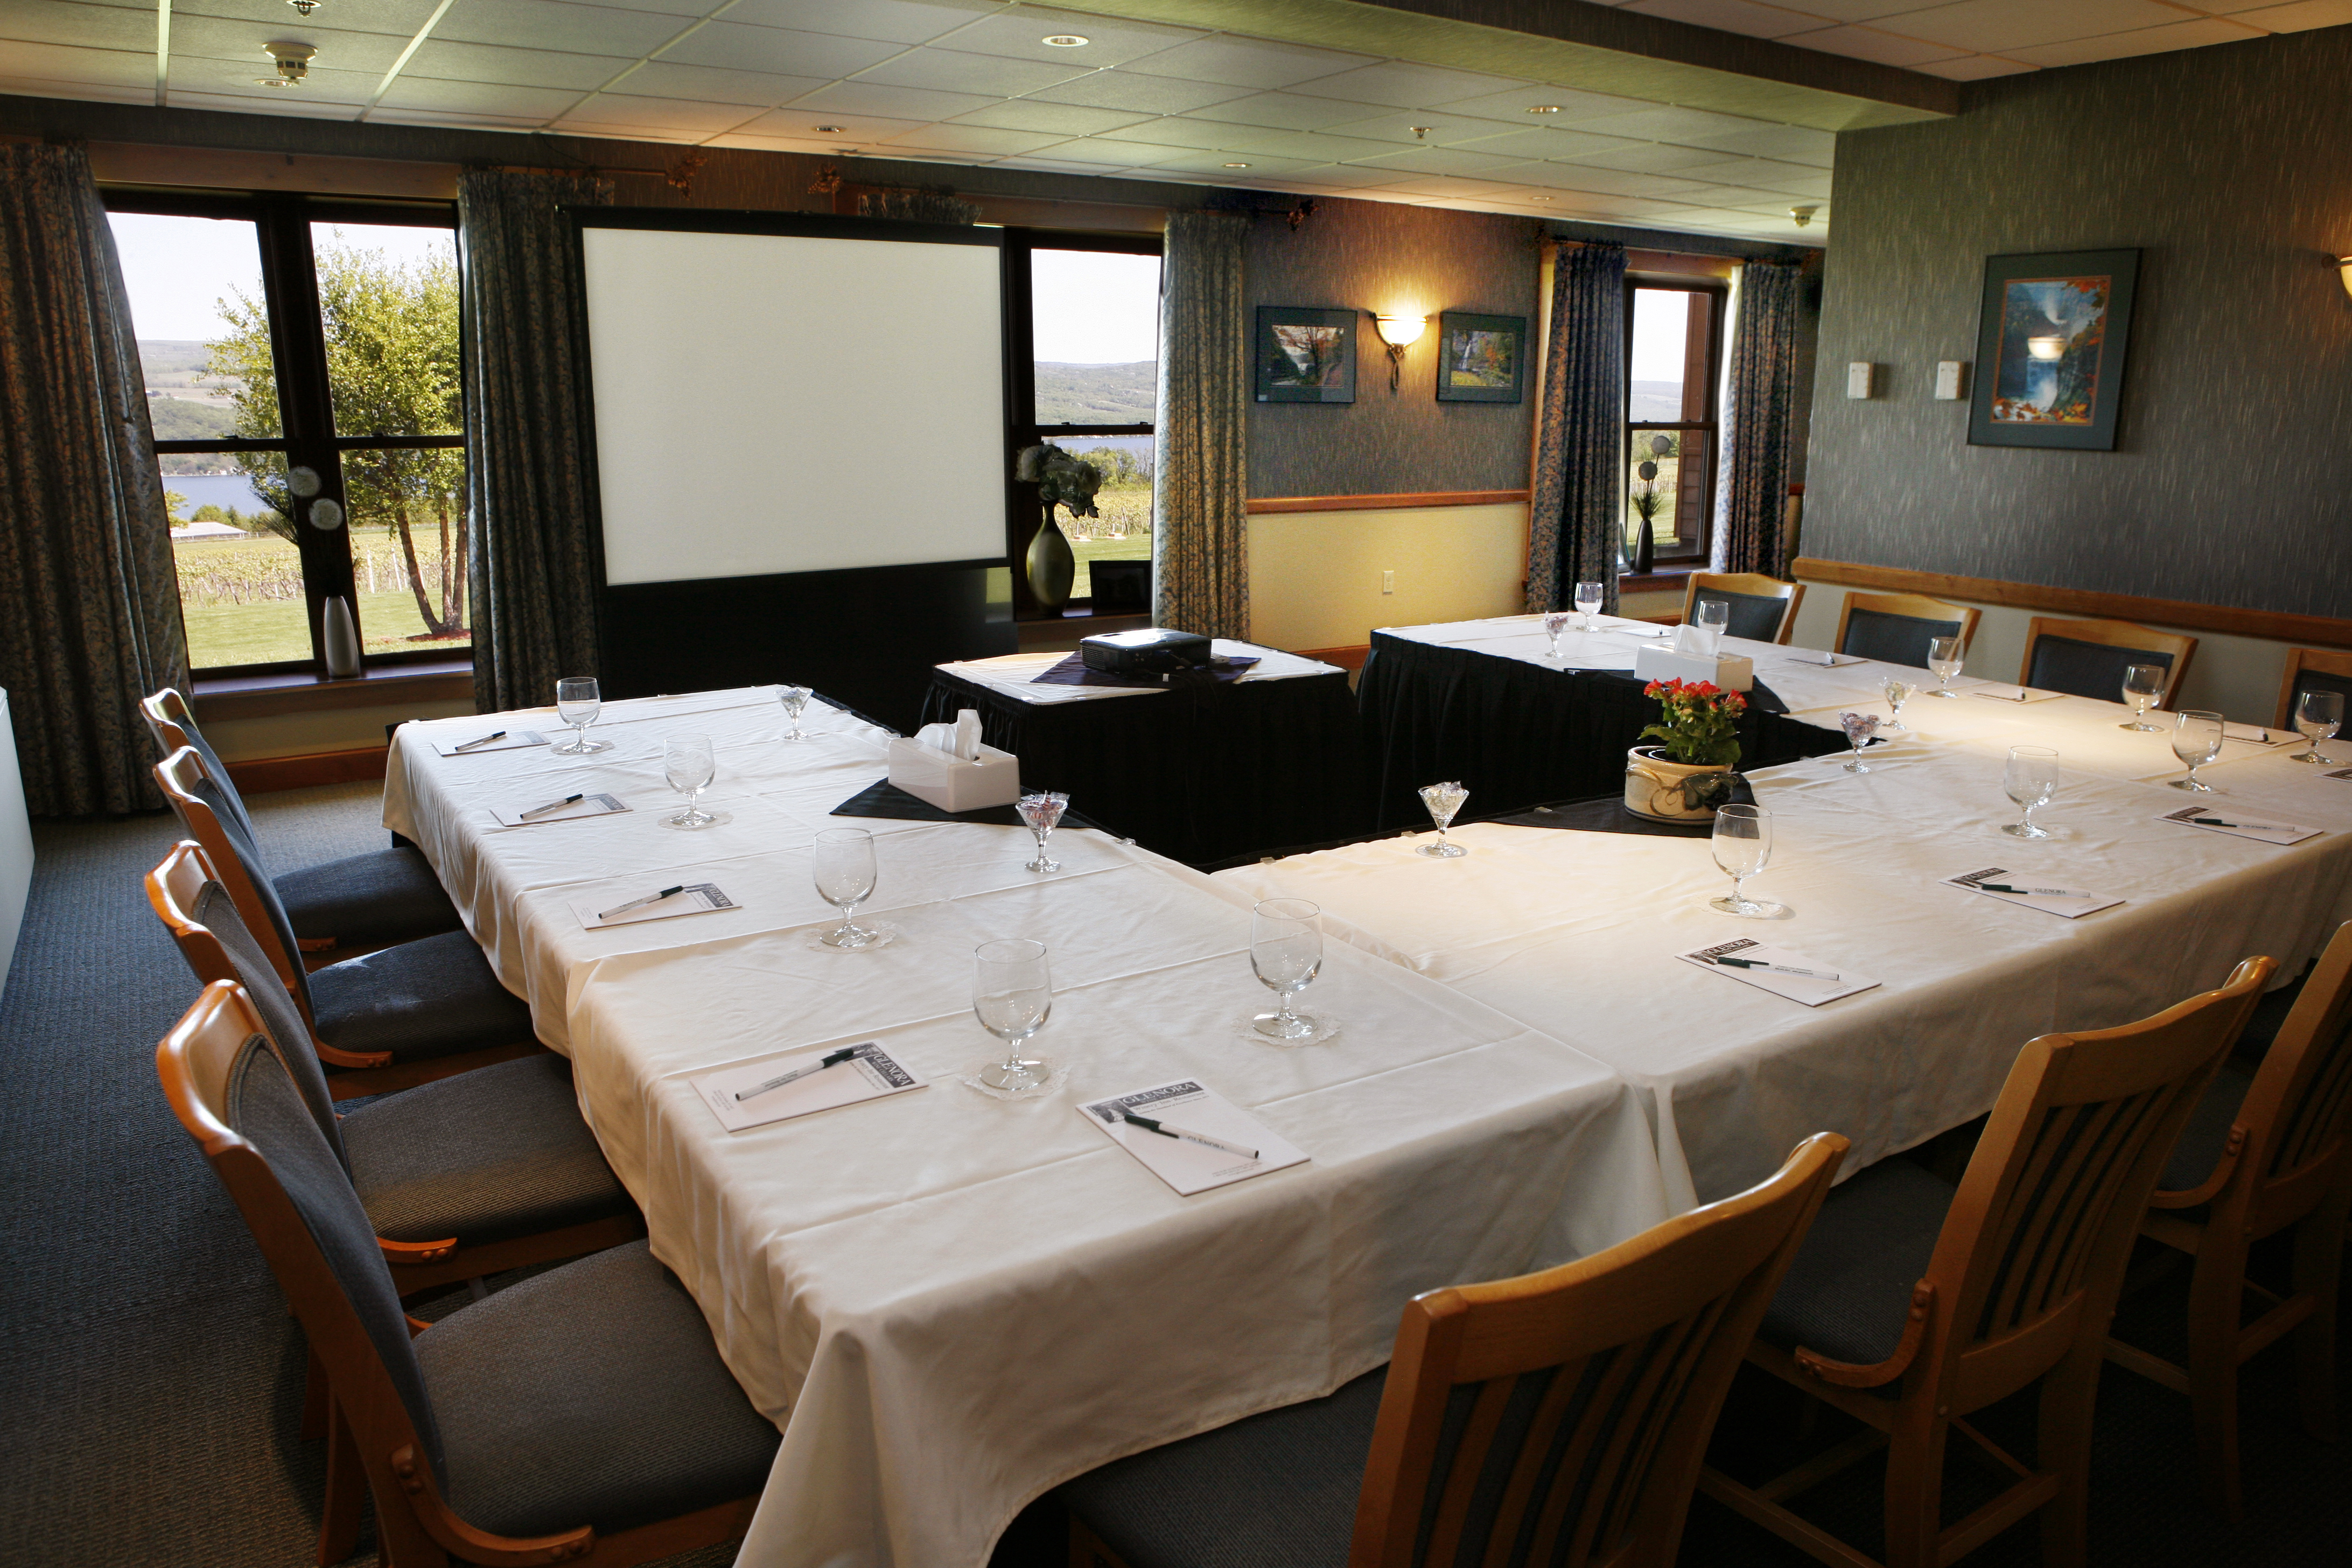 Glenora wine cellars inn meetings and conferences for Wine pictures for dining room